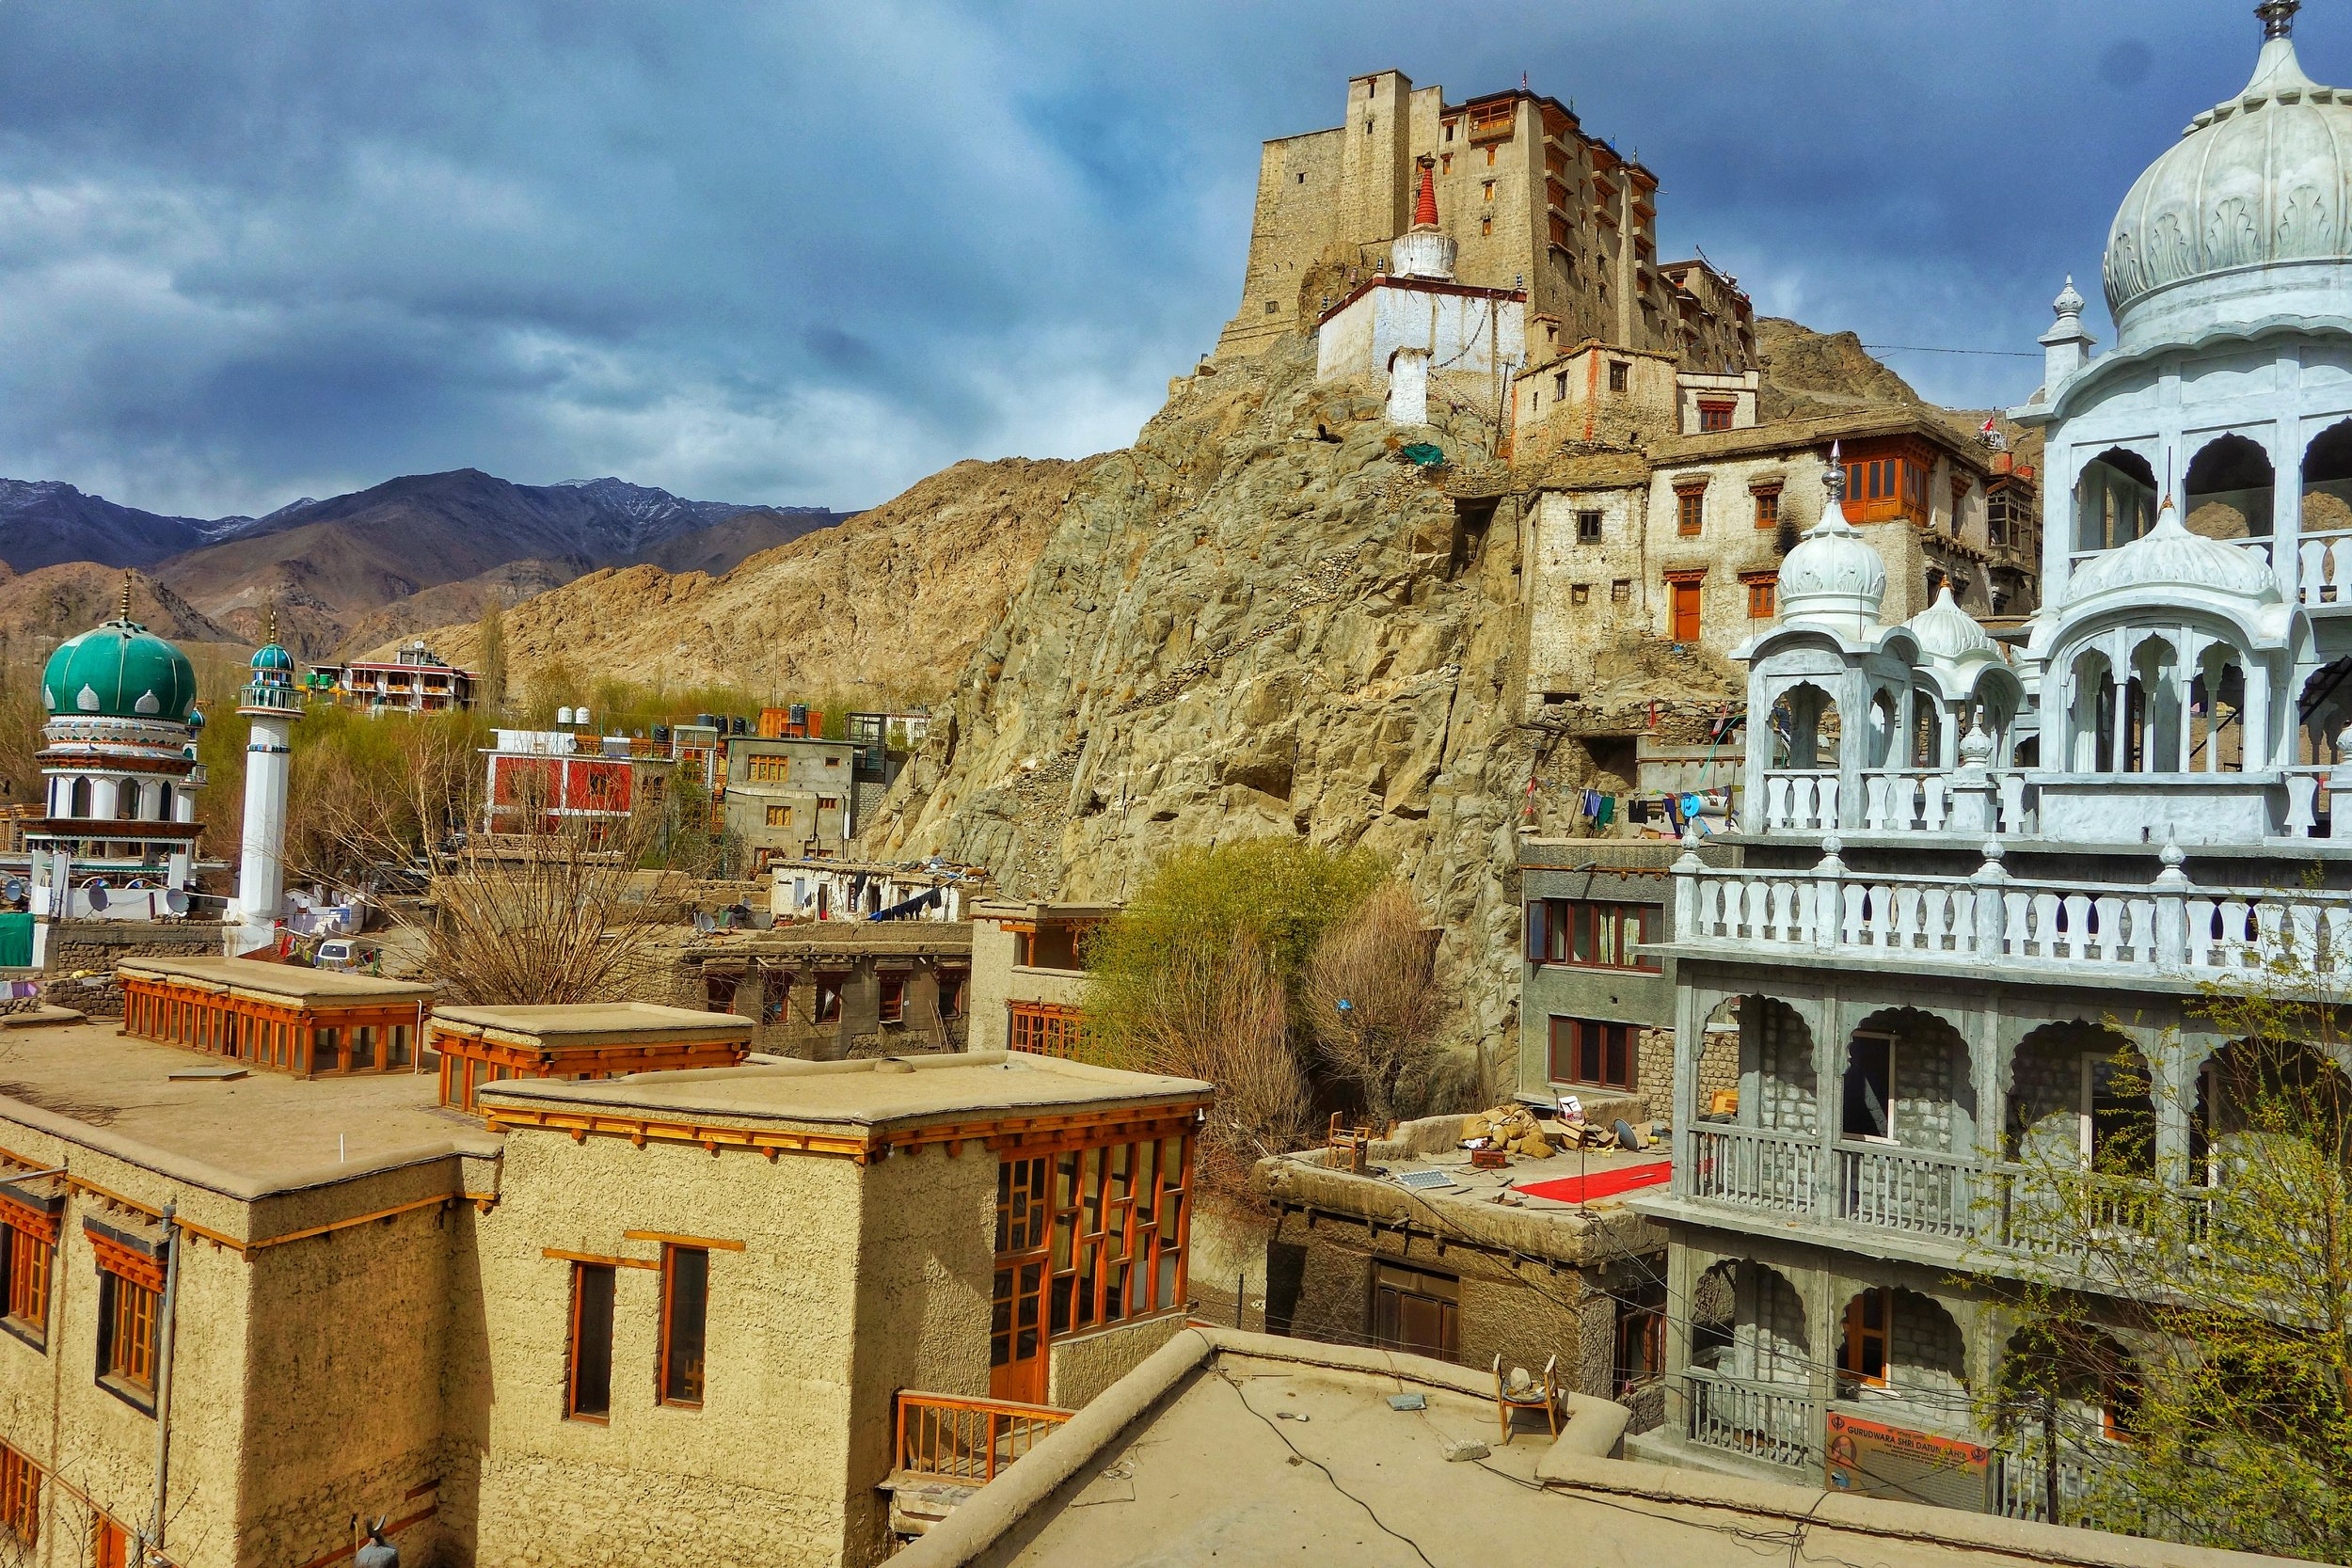 The Mosque, the Monastery at the Leh Palace and the new Gurudwara as seen from the Museum Balcony.